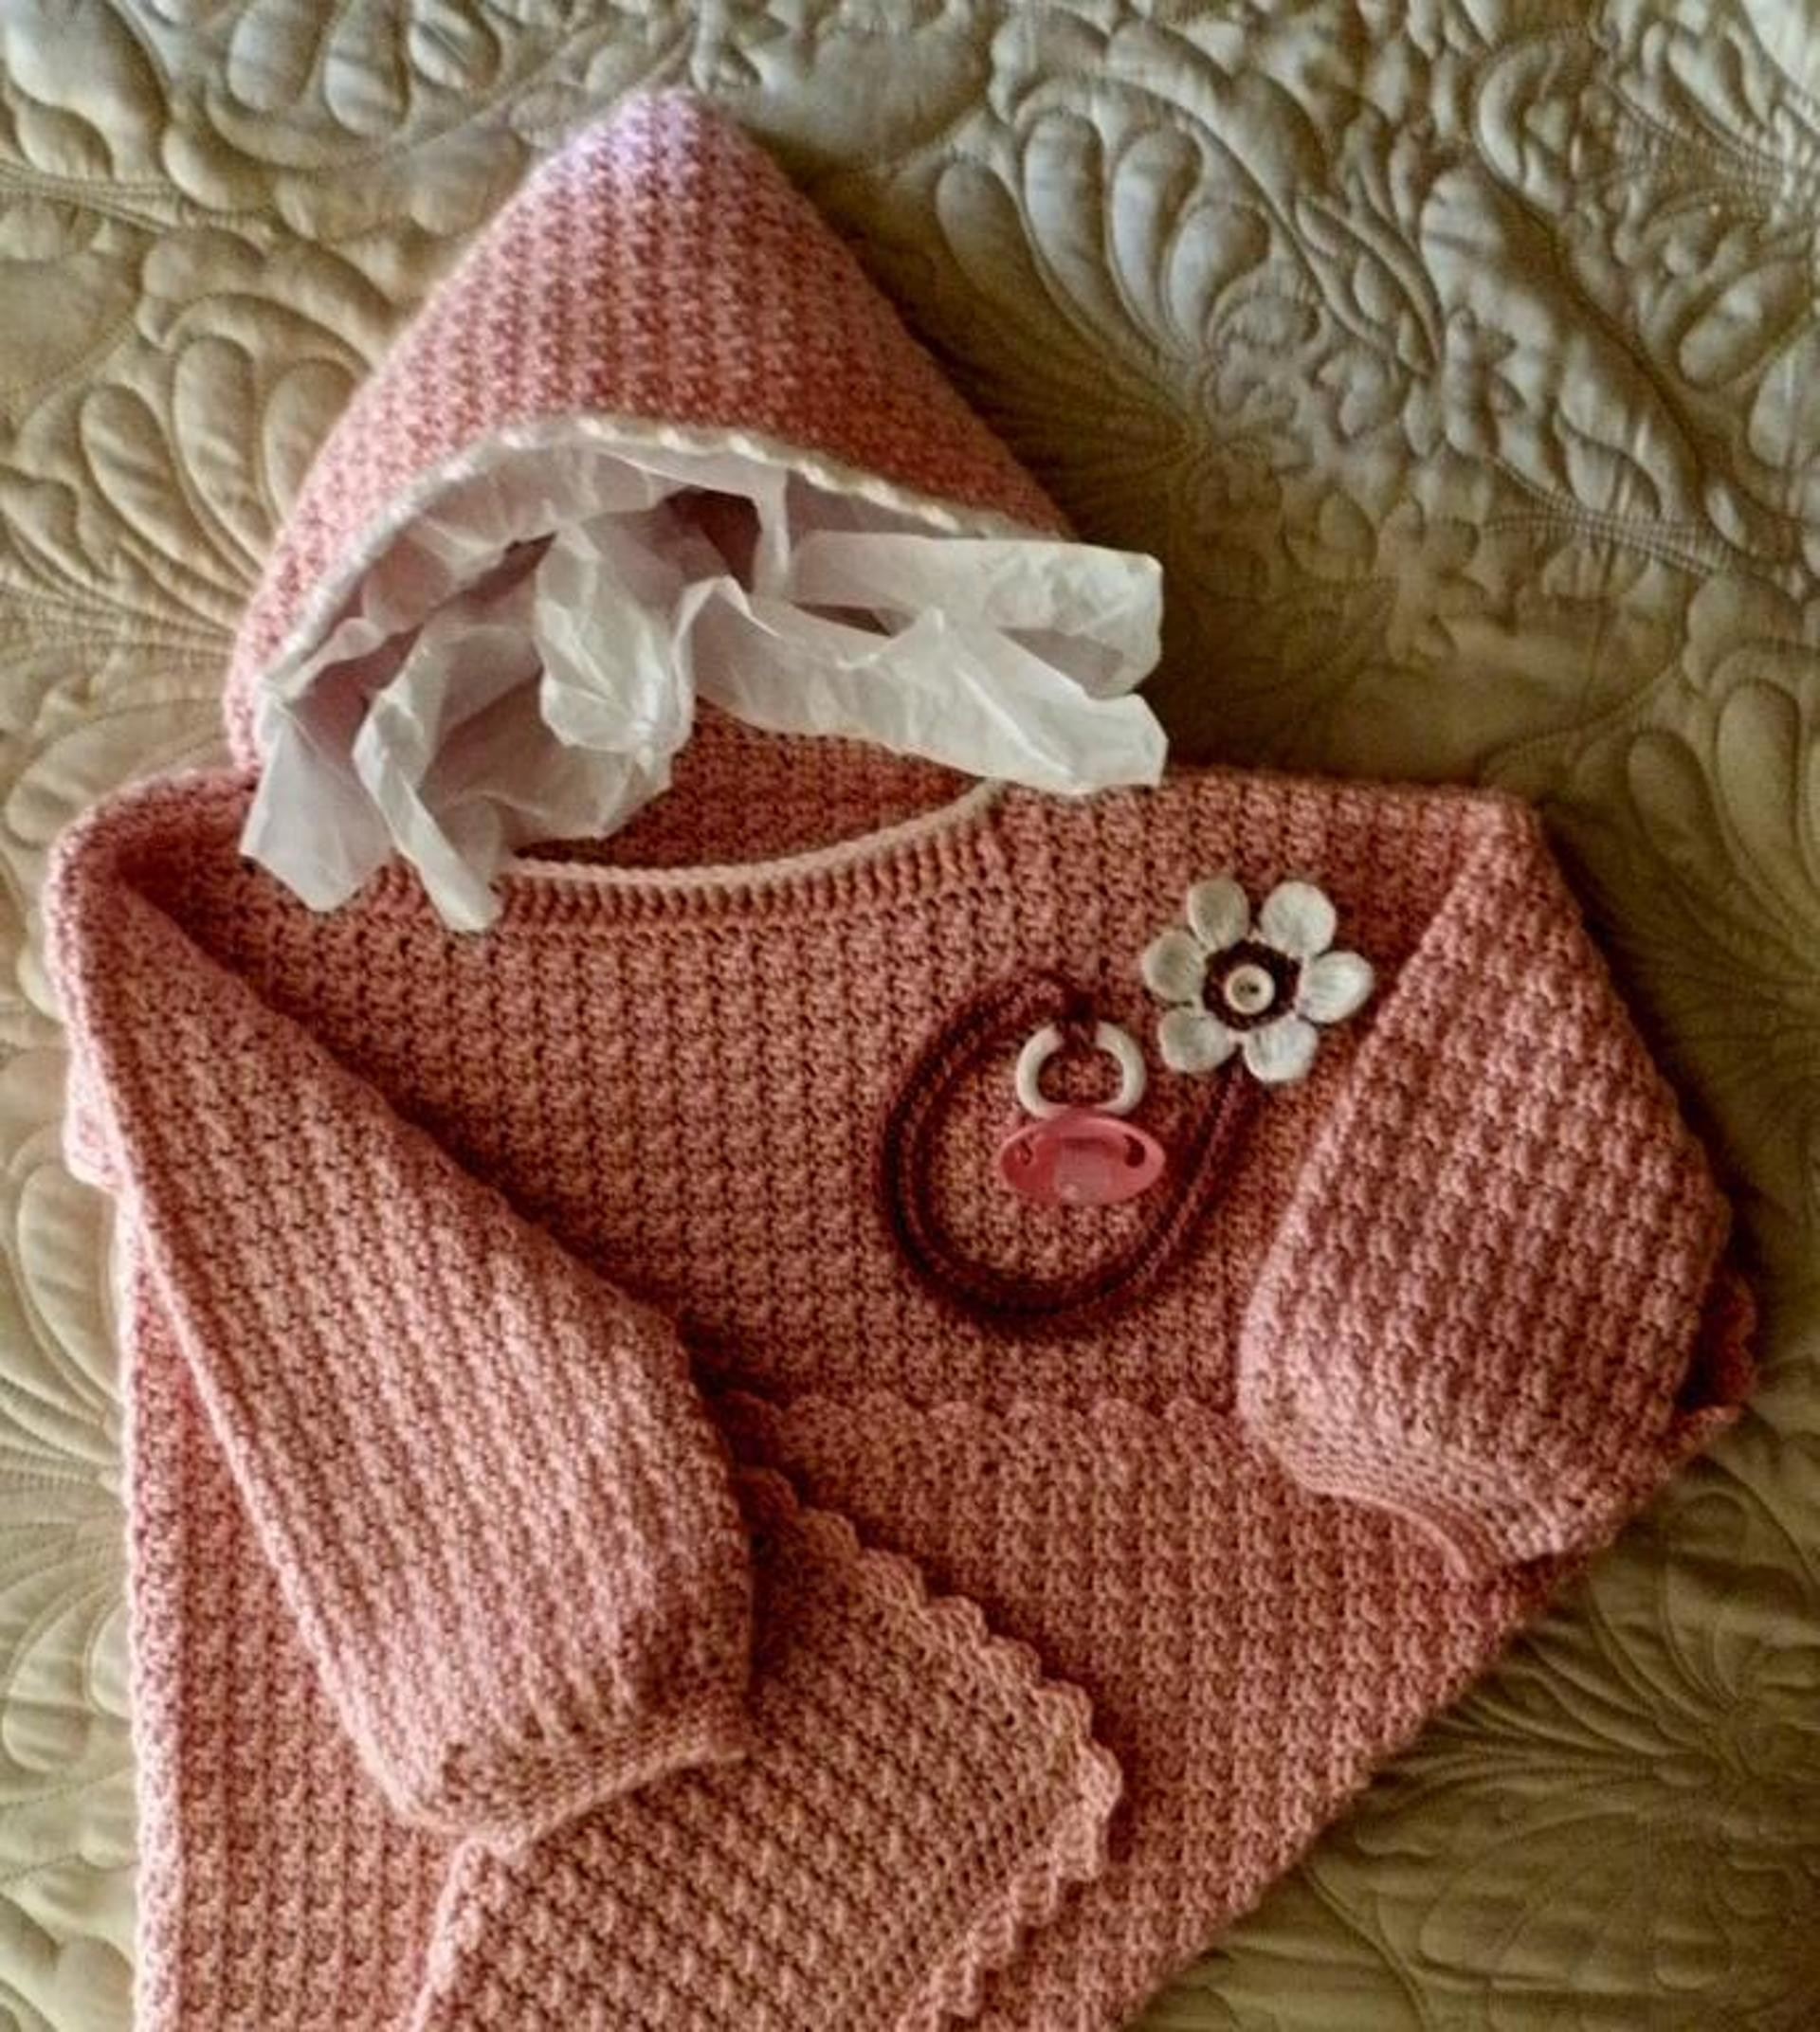 Luxury 9 Crochet Carseat Canopy Patterns for Babies Crochet Car Seat Blanket Of Beautiful 43 Pics Crochet Car Seat Blanket